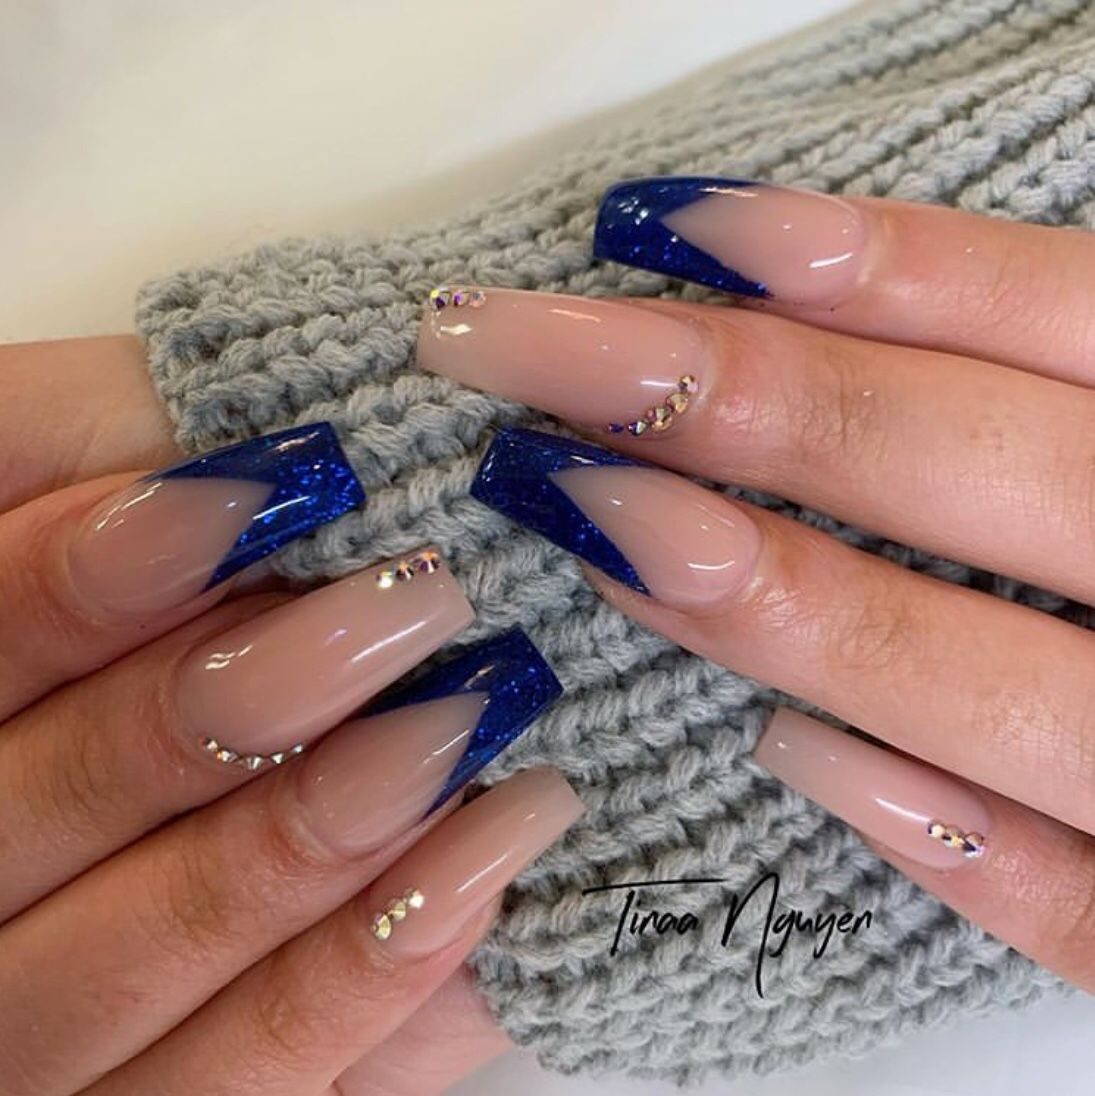 50 Glam Nail Designs For Prom 2020 The Glossychic In 2020 Glam Nails Pretty Acrylic Nails Crystal Nails